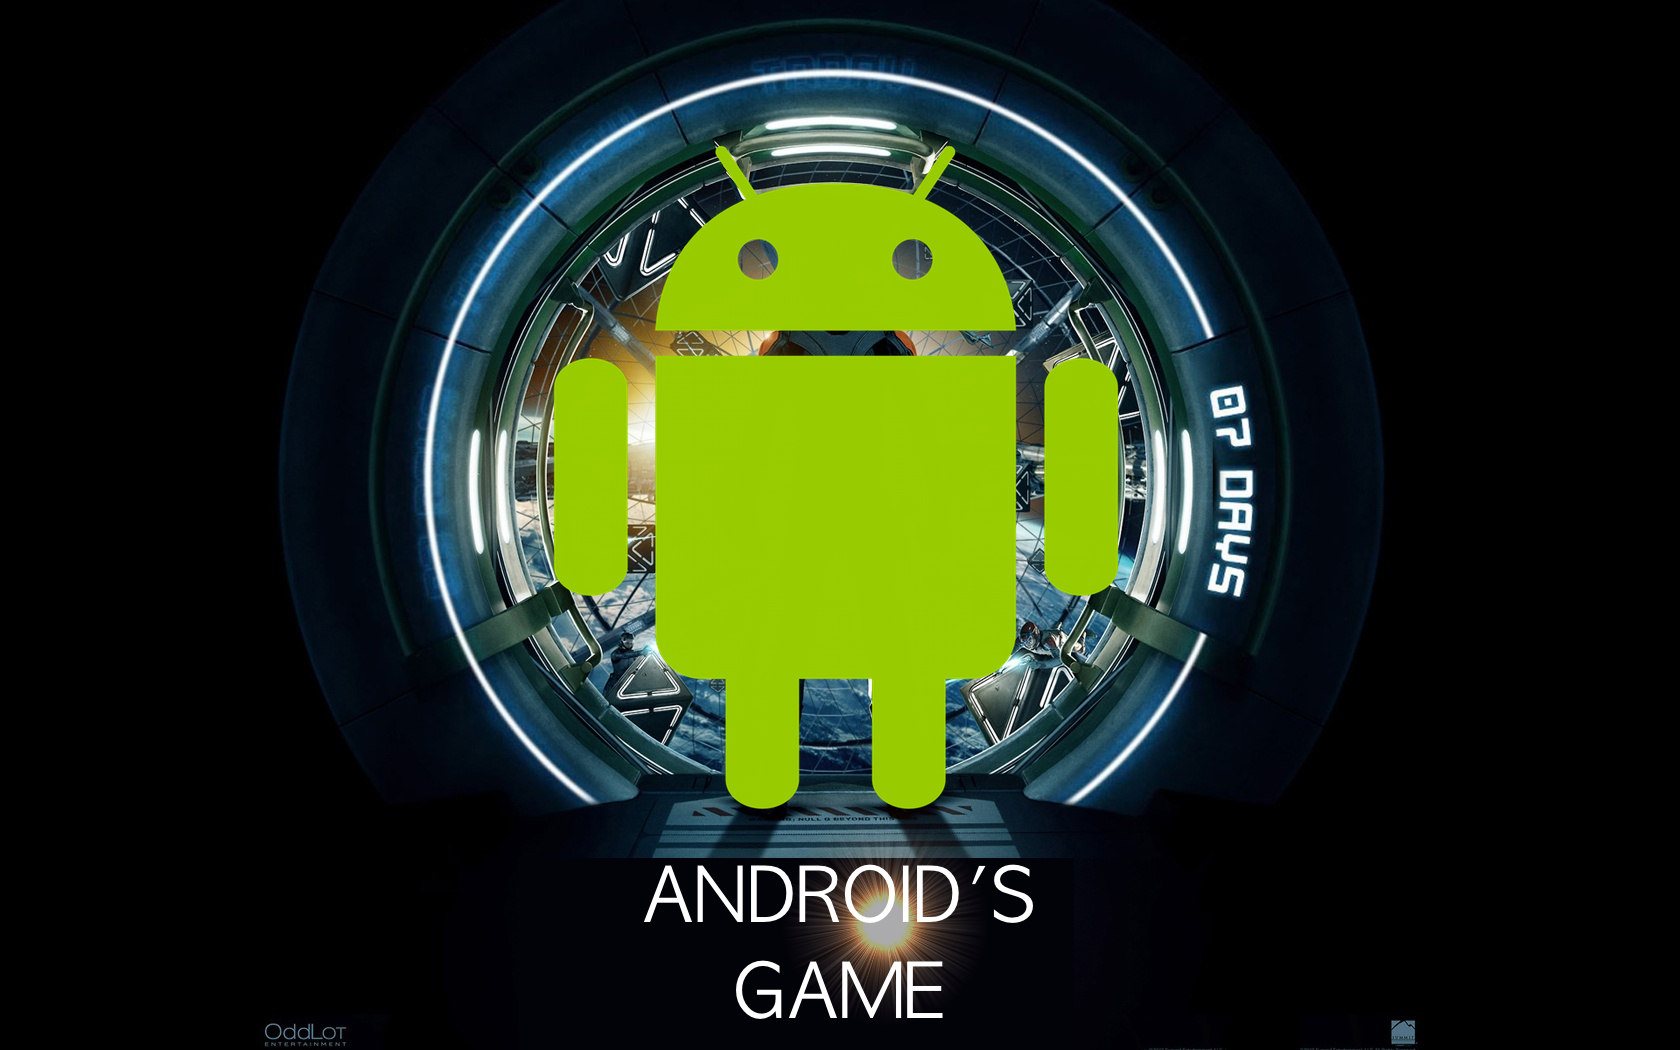 androids-game